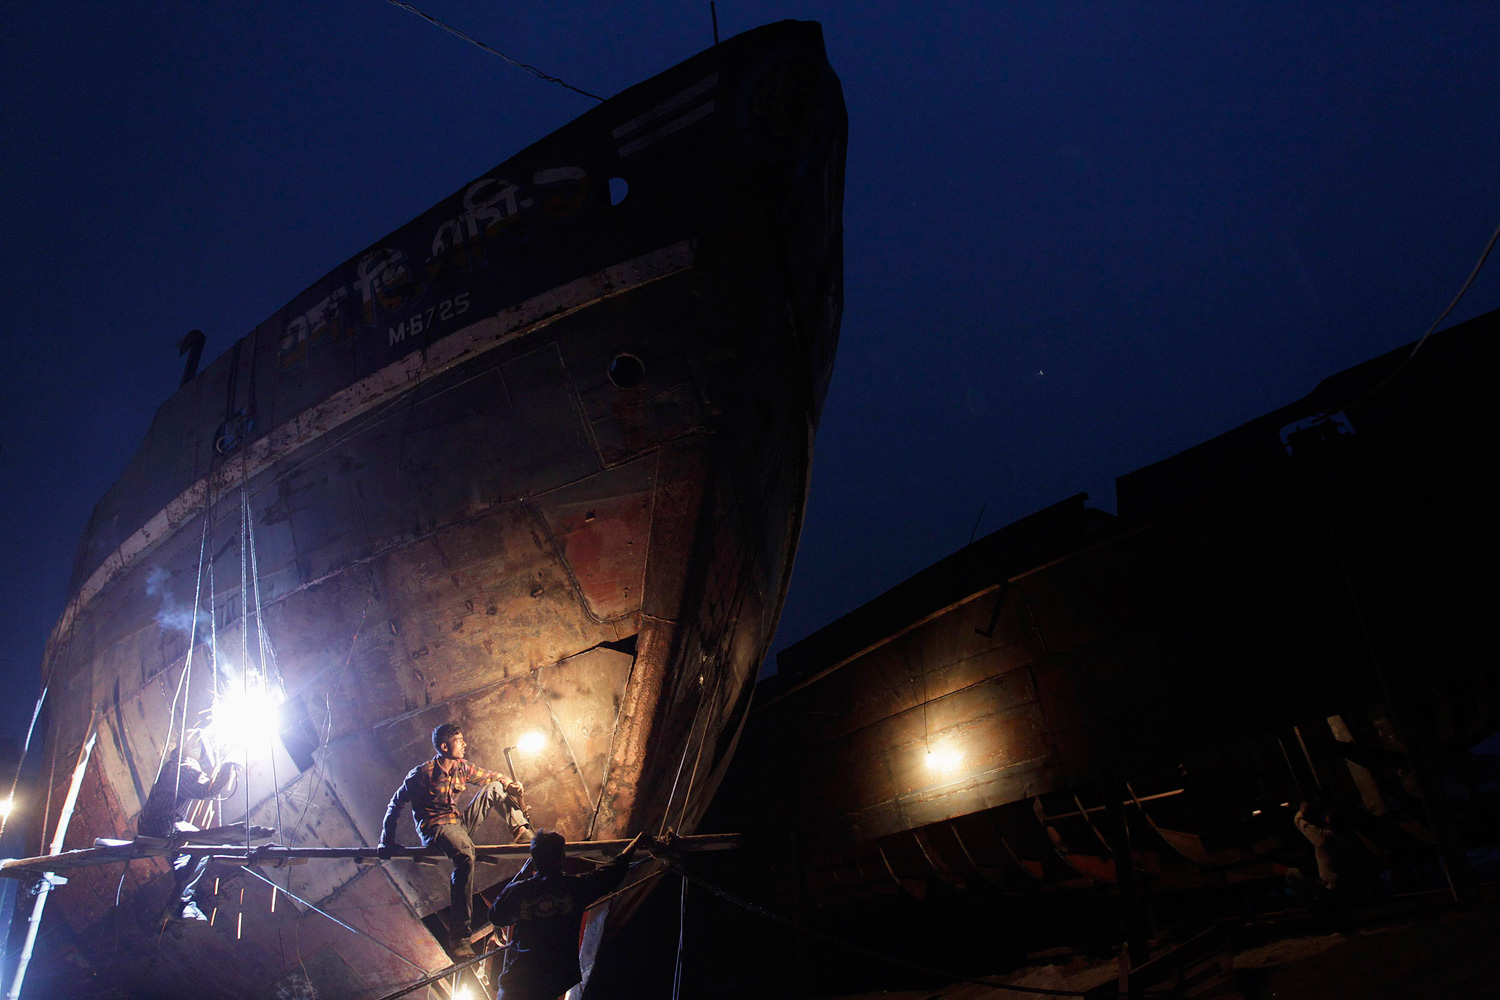 January 8, 2012. Workers weld at a ship-building yard next to Buriganga River in Dhaka.